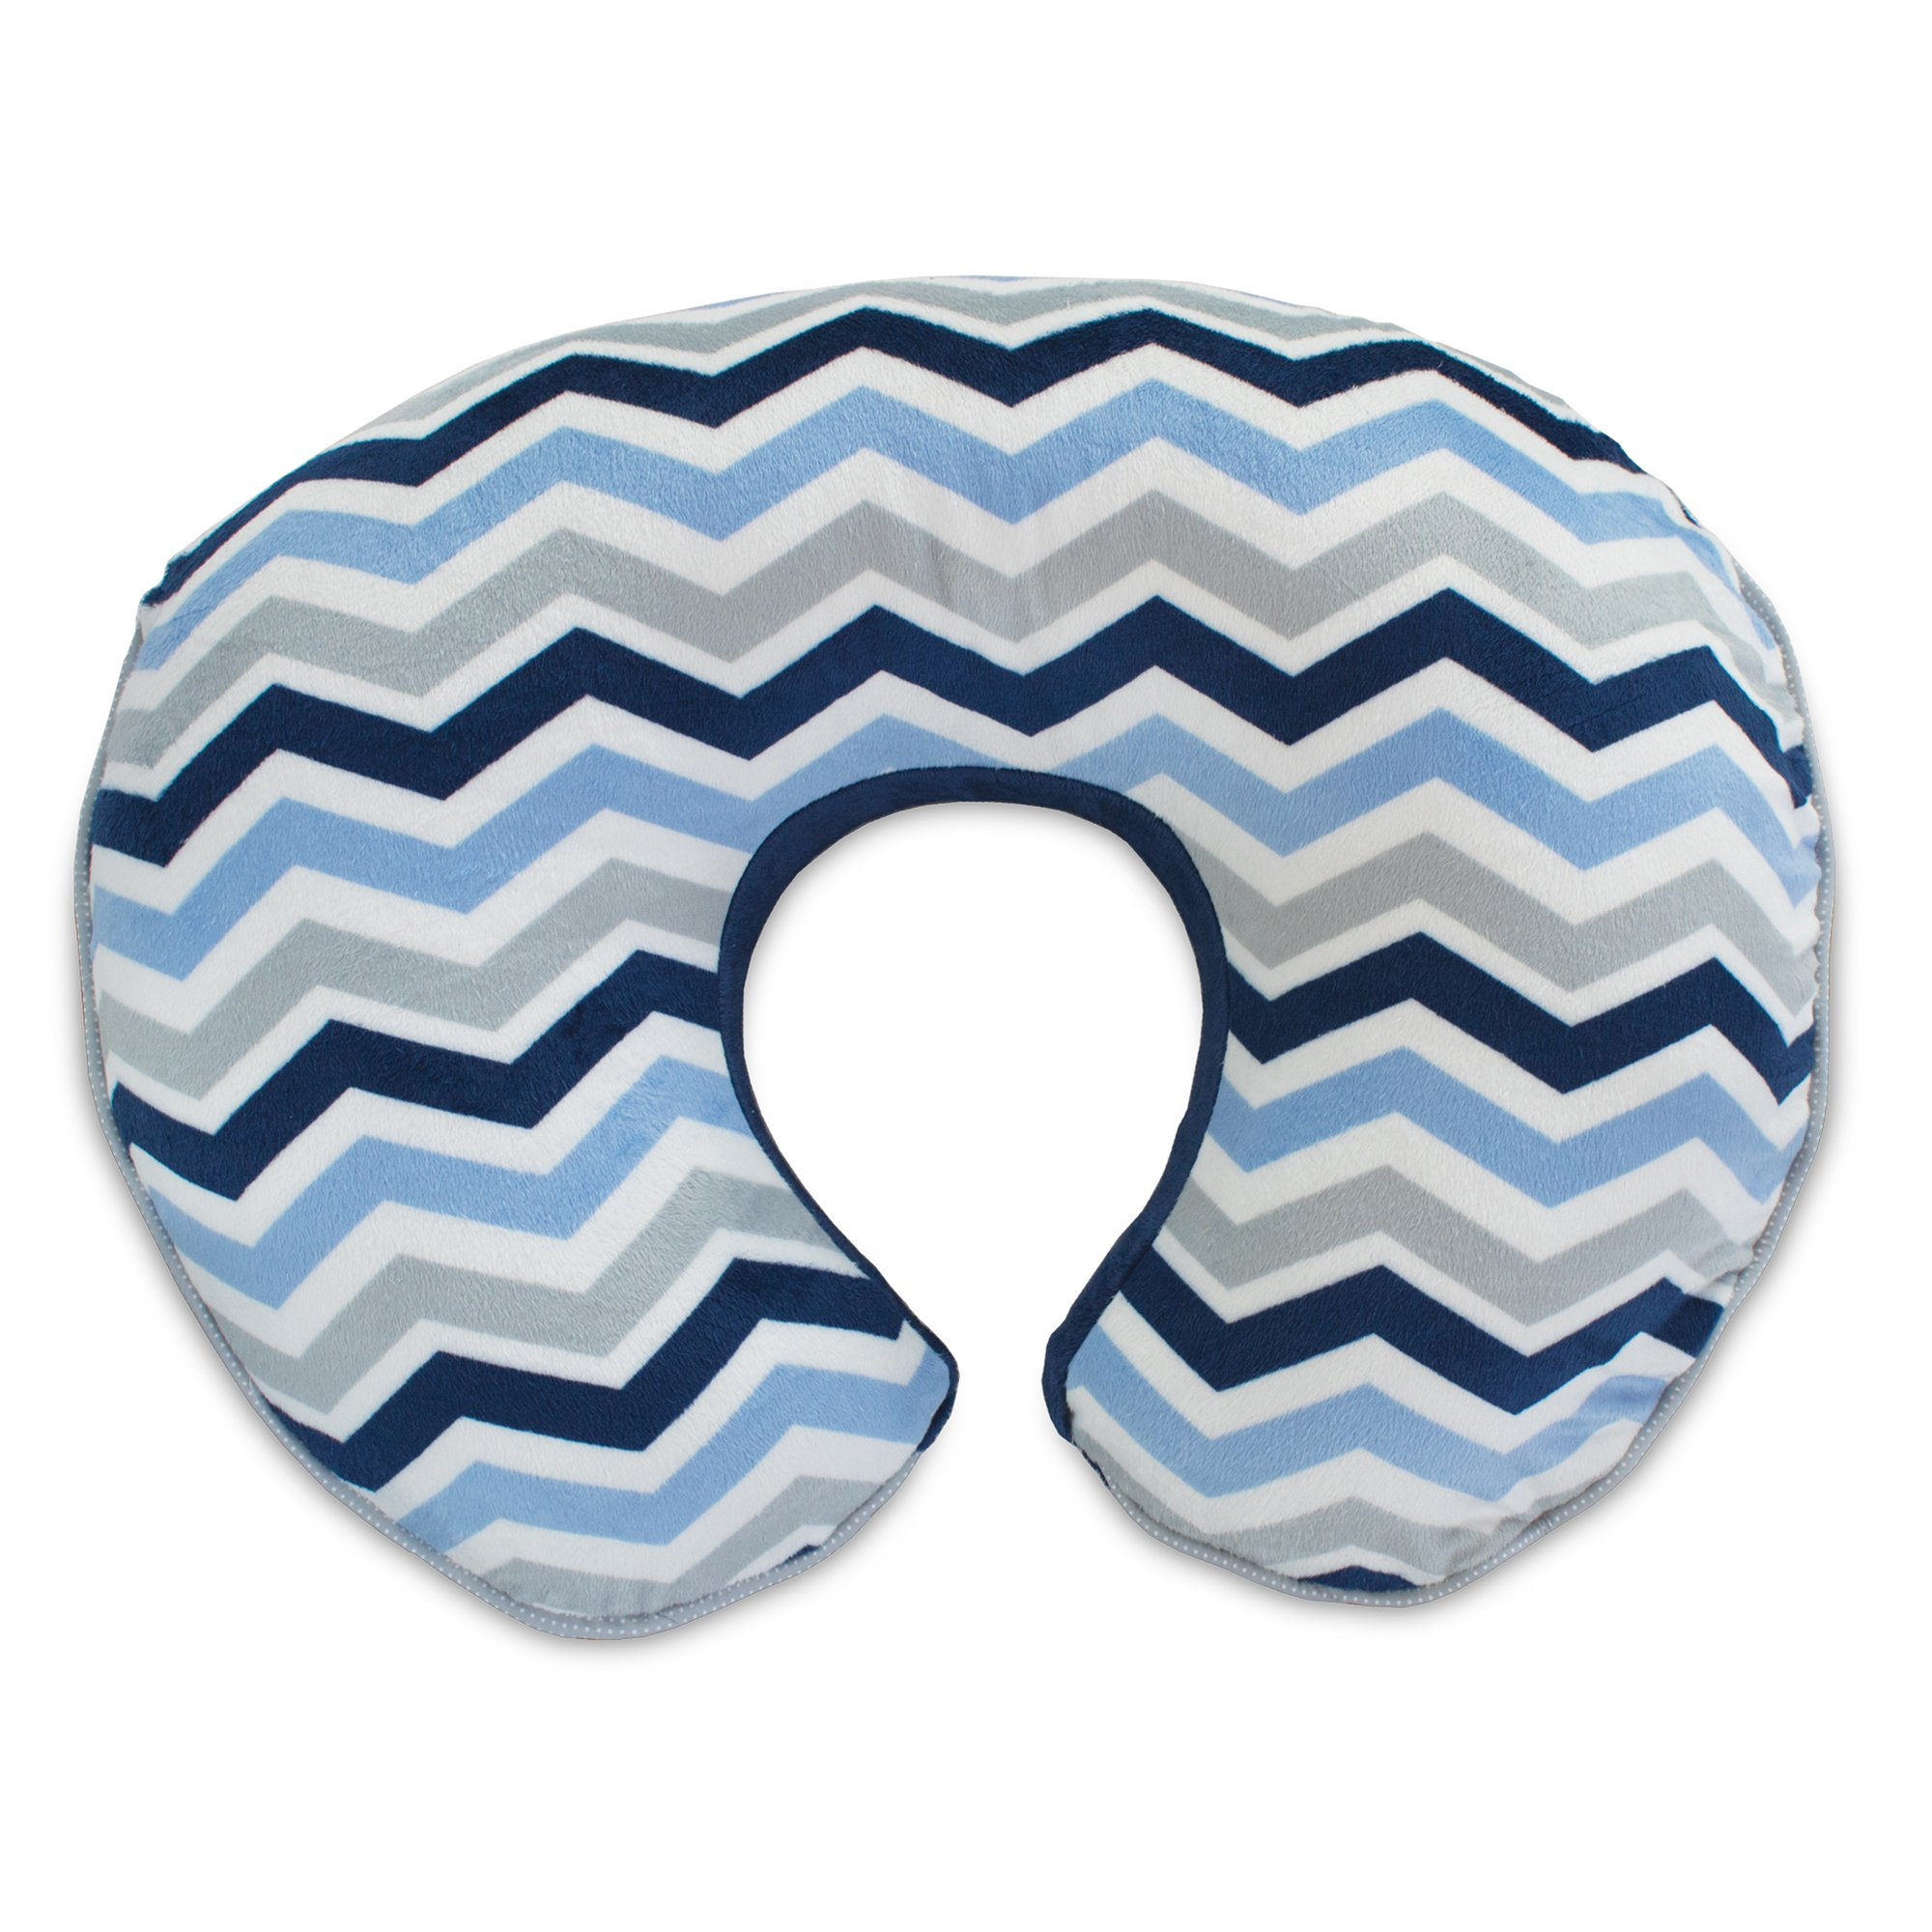 Boppy Pillow Slipcover, Boutique Navy Chevron